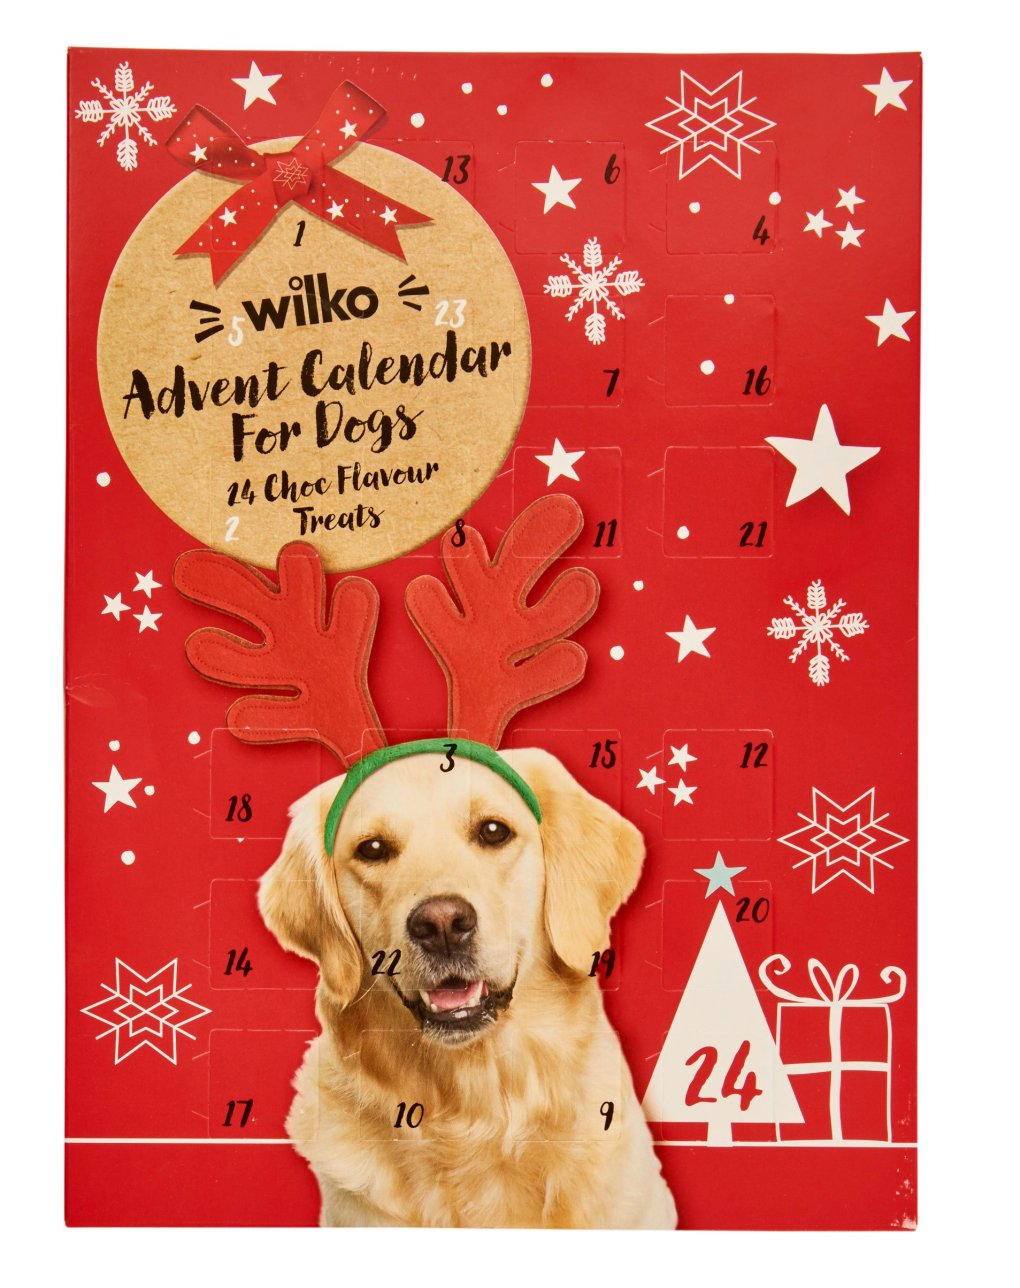 Advent Calendar For Cats or Dogs, £2 each, In store only at Wilko